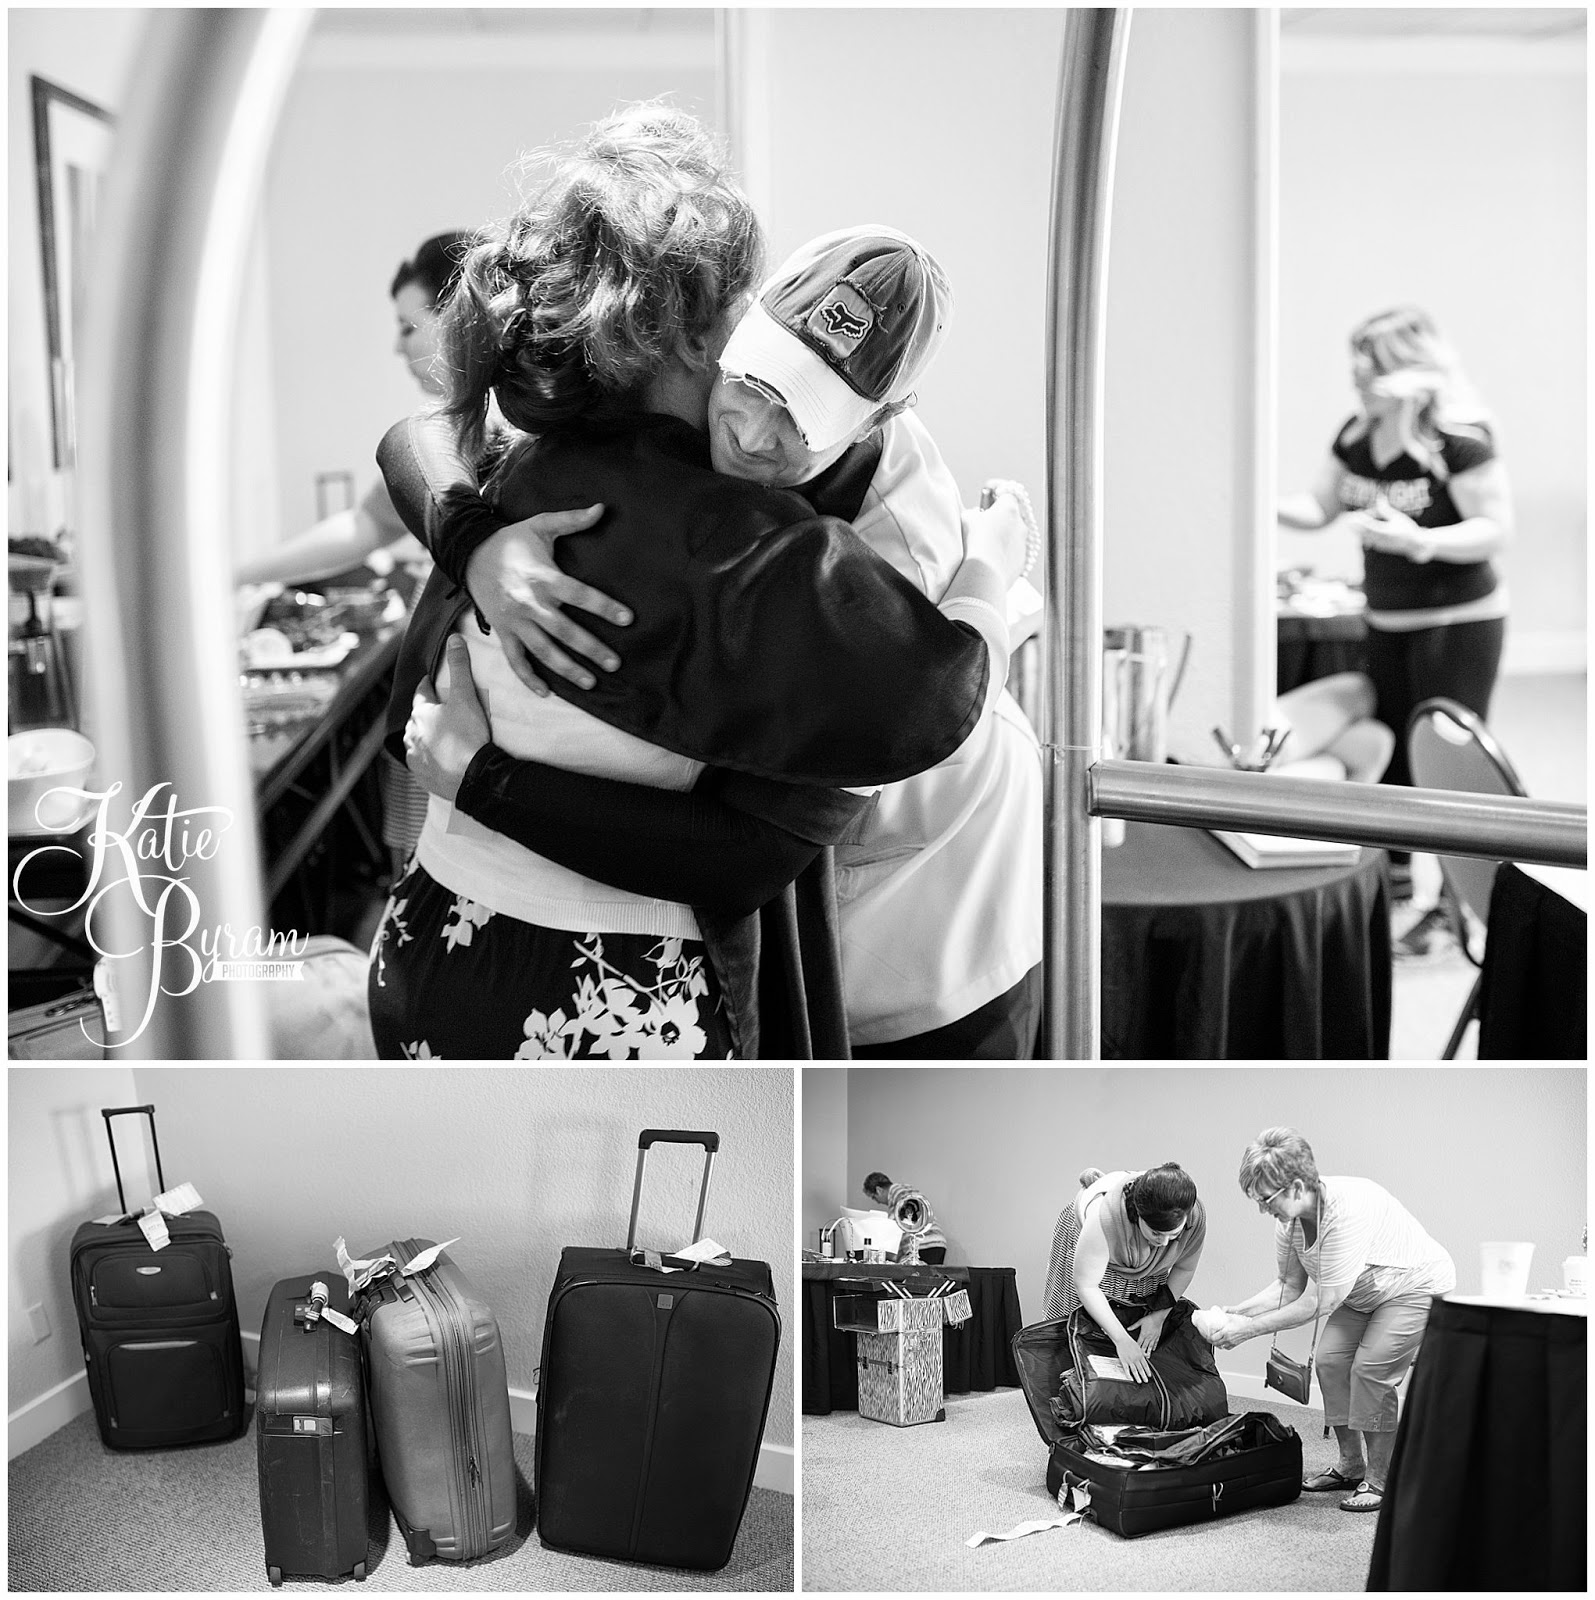 luggage reunited, destination wedding, clearwater beach wedding, hilton clearwater beach wedding, katie byram photography, florida wedding